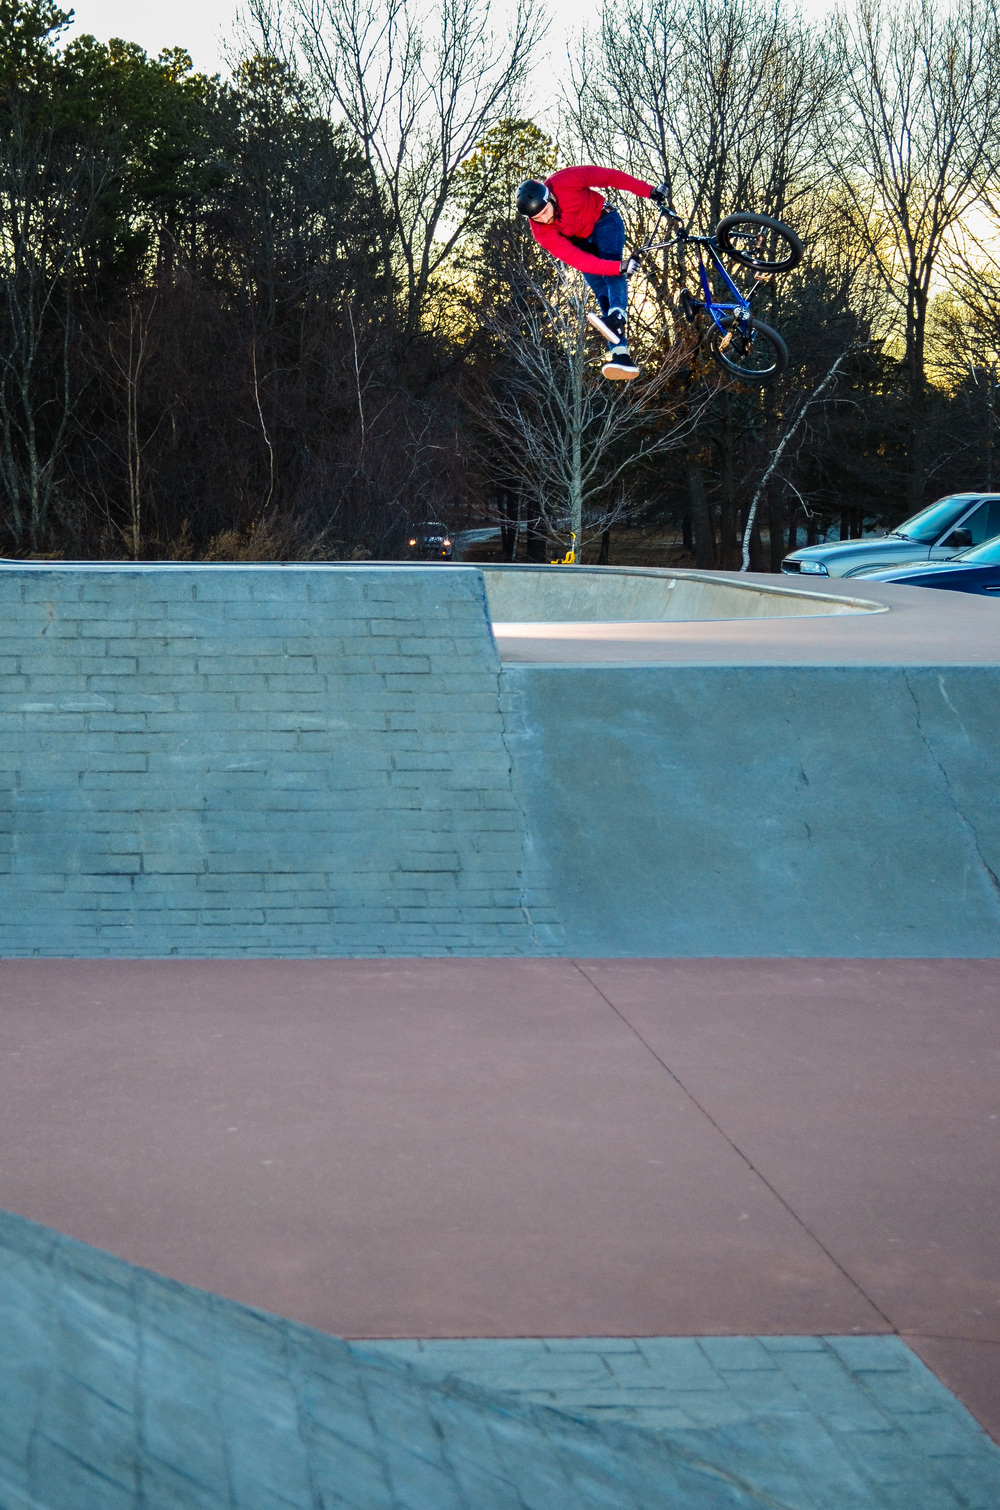 Brandon Christe - No Footed Can